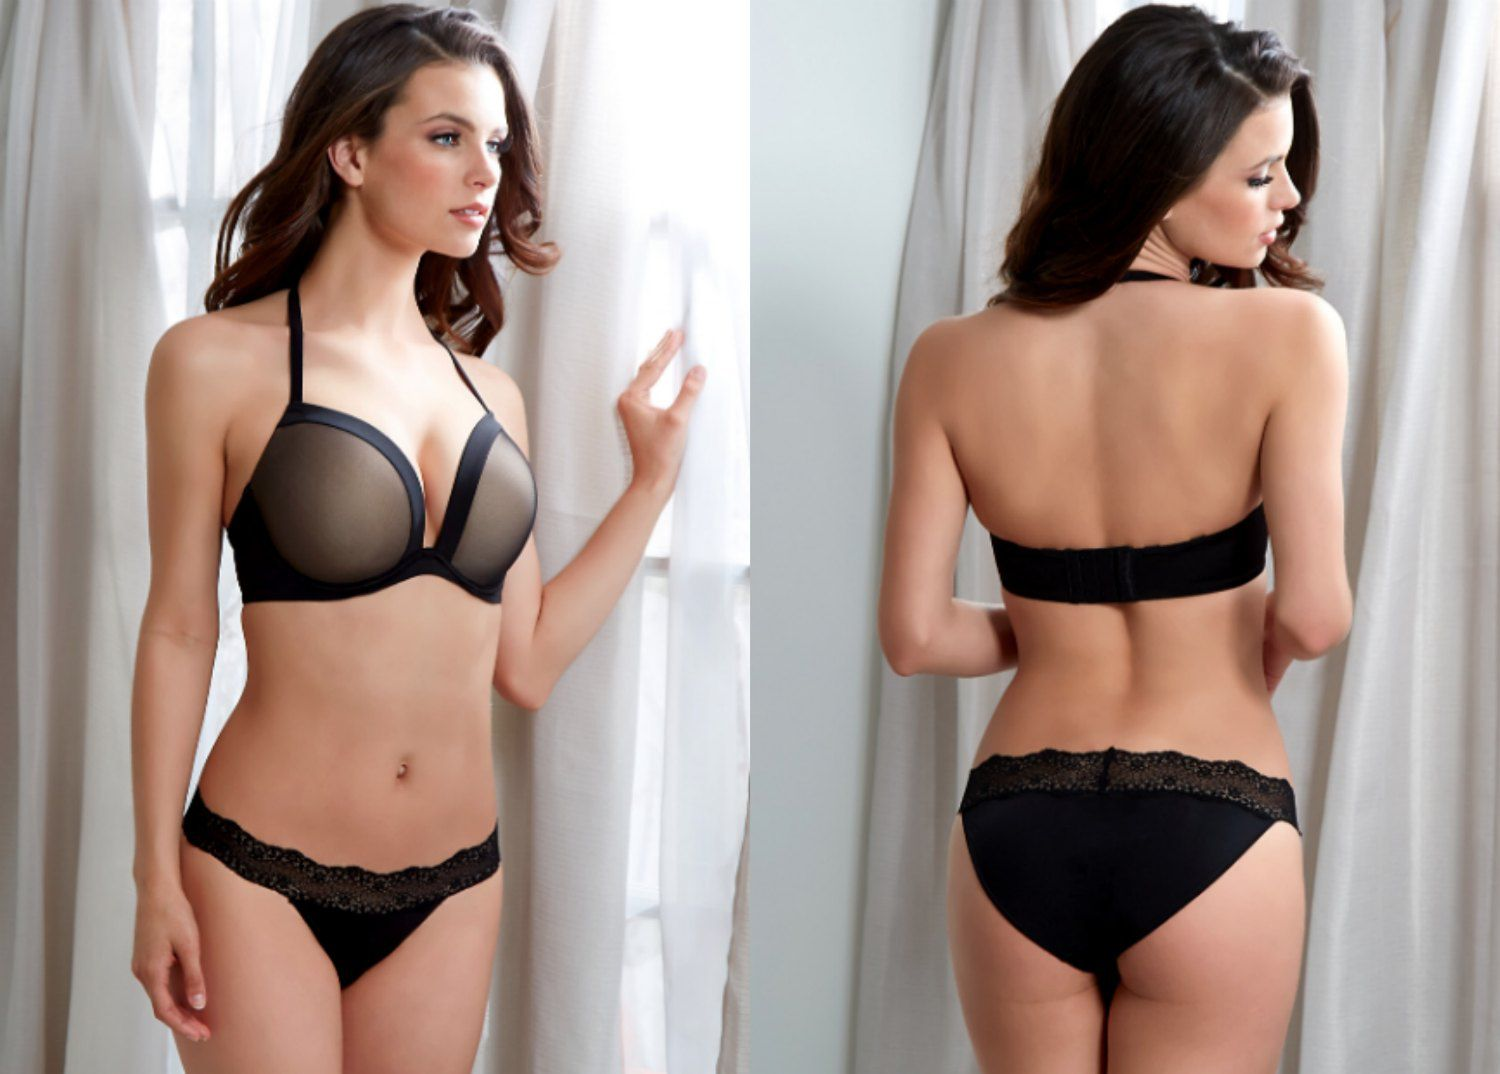 c0616ec097 The Best Halter Bras